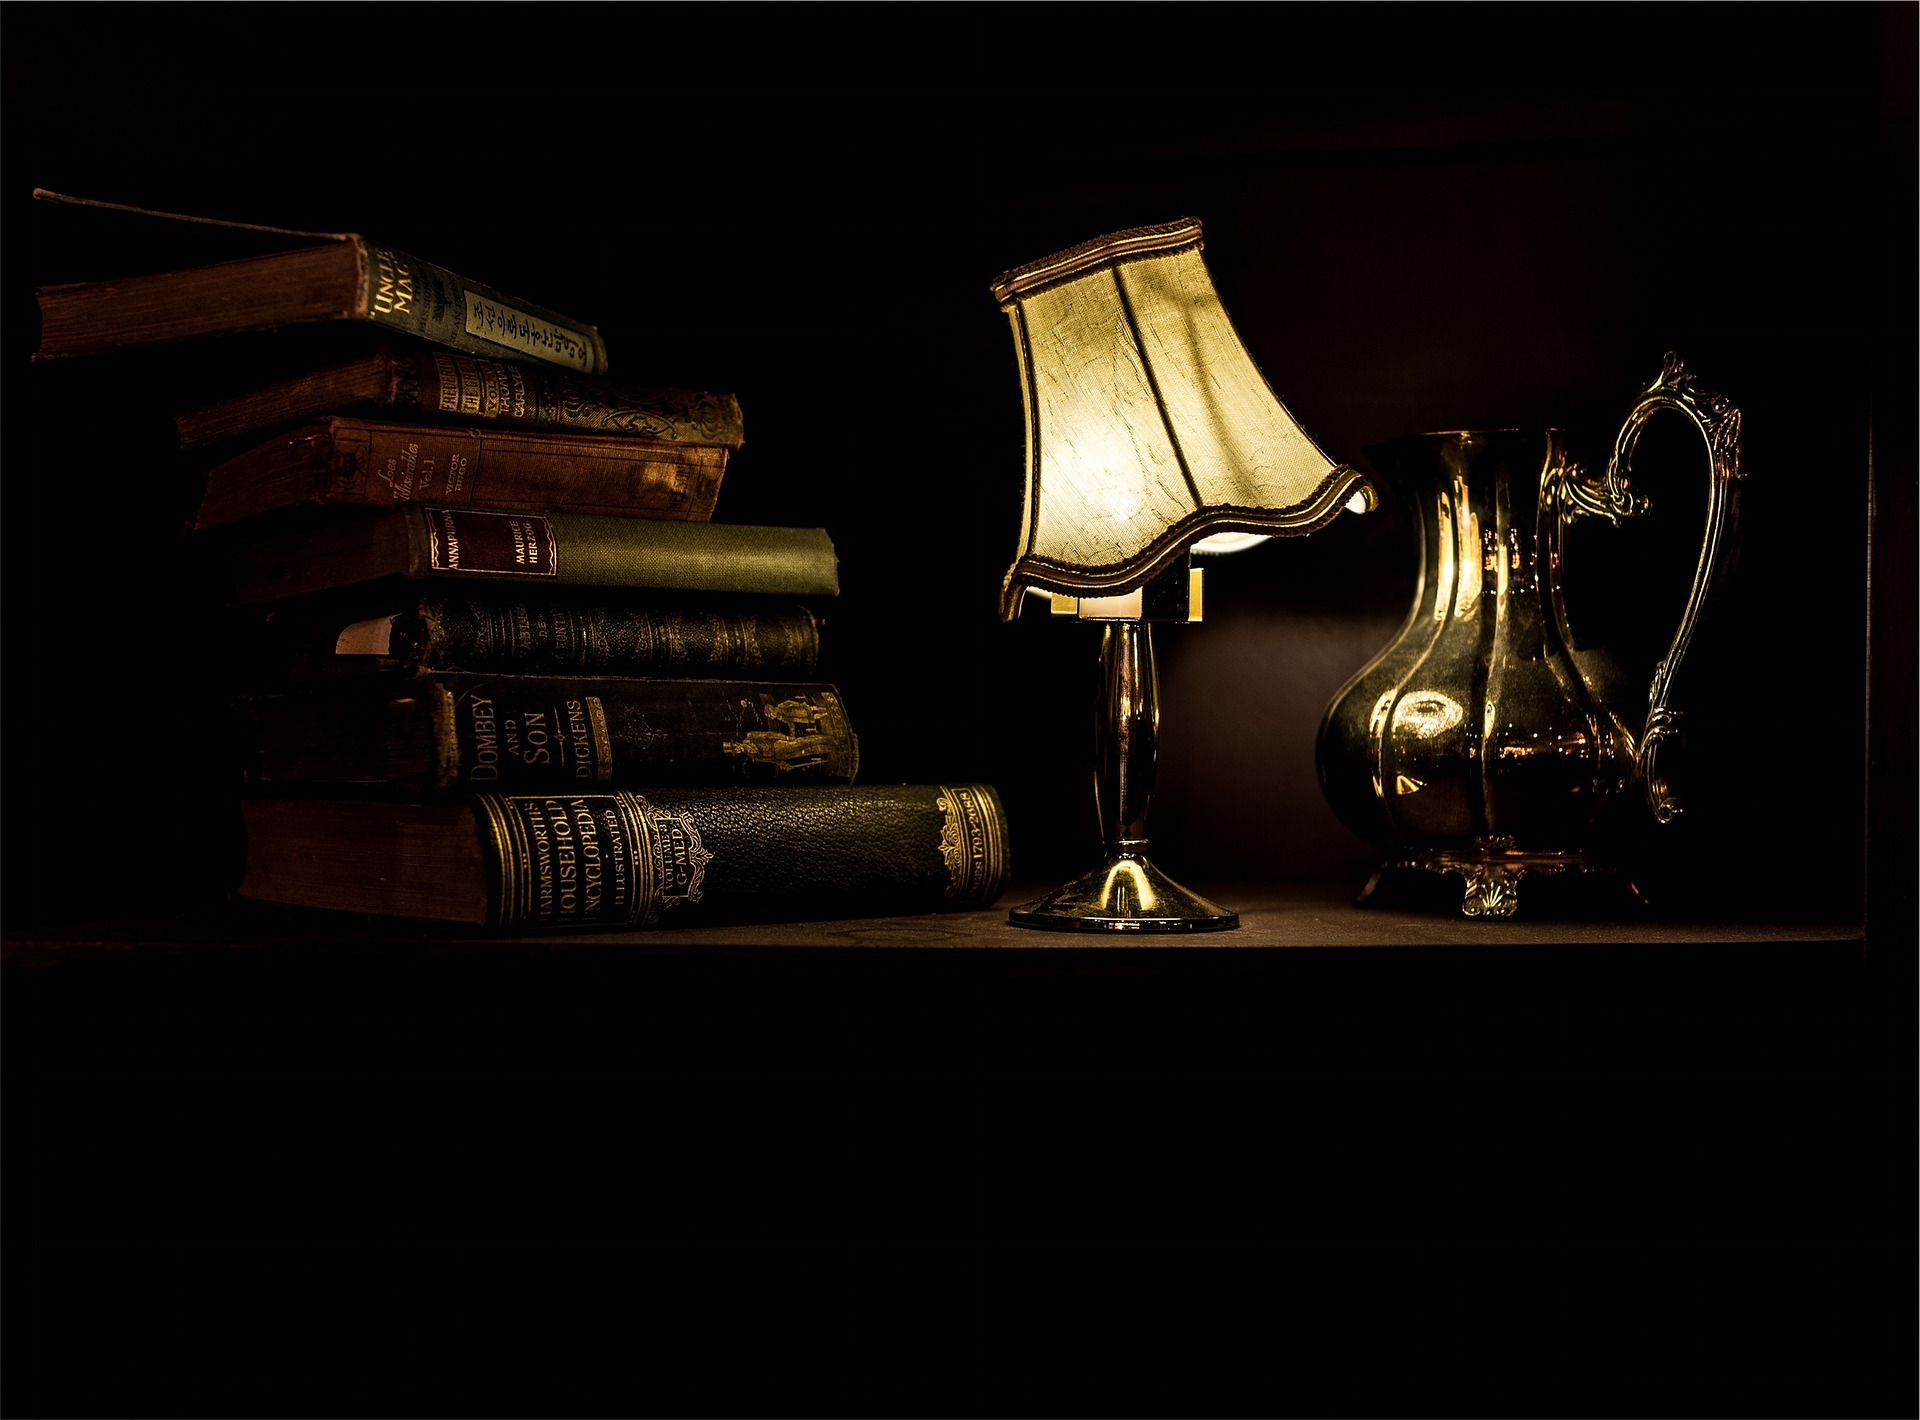 A lit desk lamp, hardcover books and a teapot on a desk.